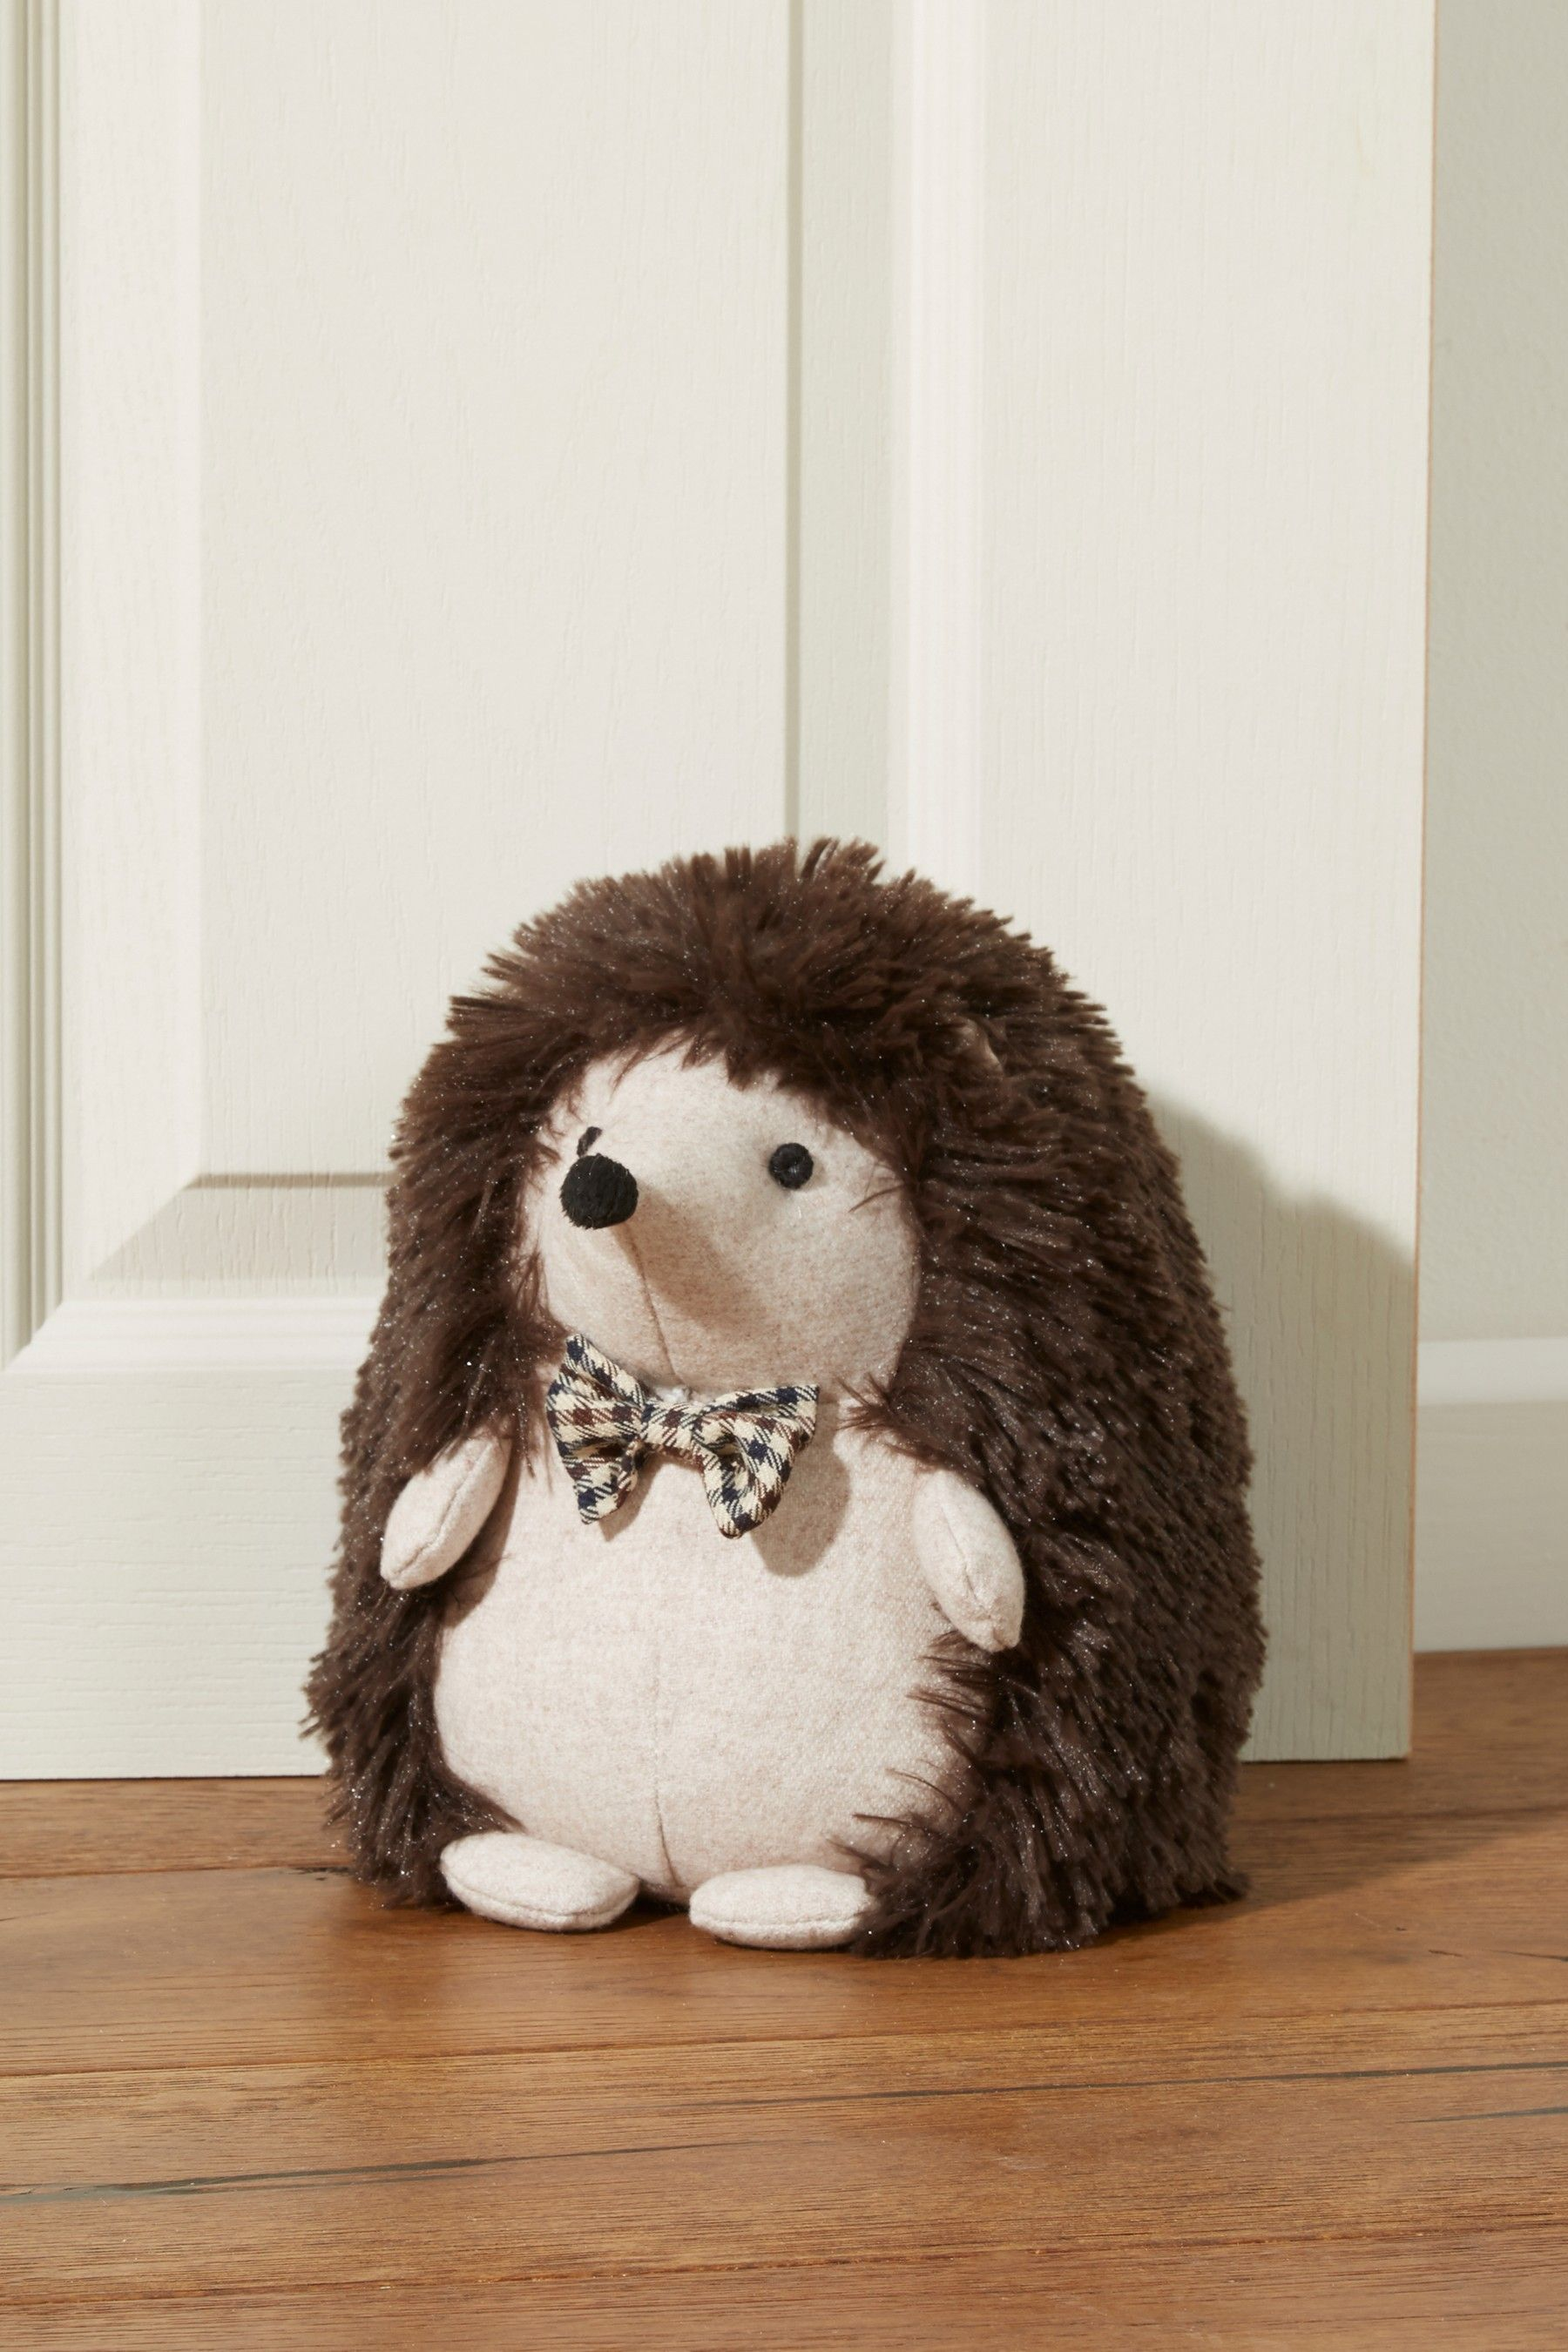 Animal Door Stops Uk Next Hedgehog Doorstop Brown Products Door Stop Next Uk Uk